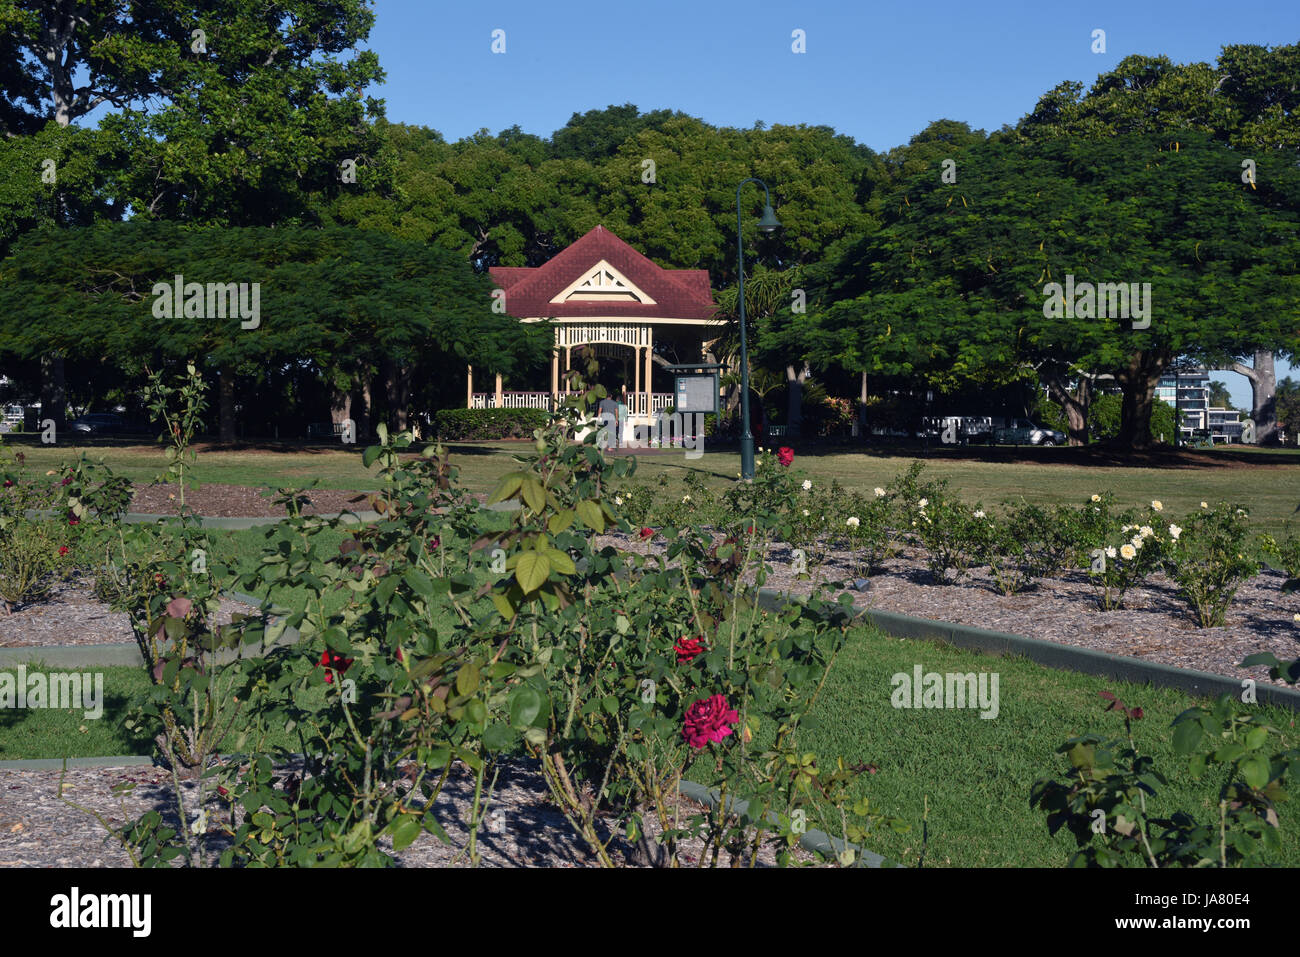 New Farm Park, Brisbane, Australia: Popular rose gardens and bandstand - Stock Image